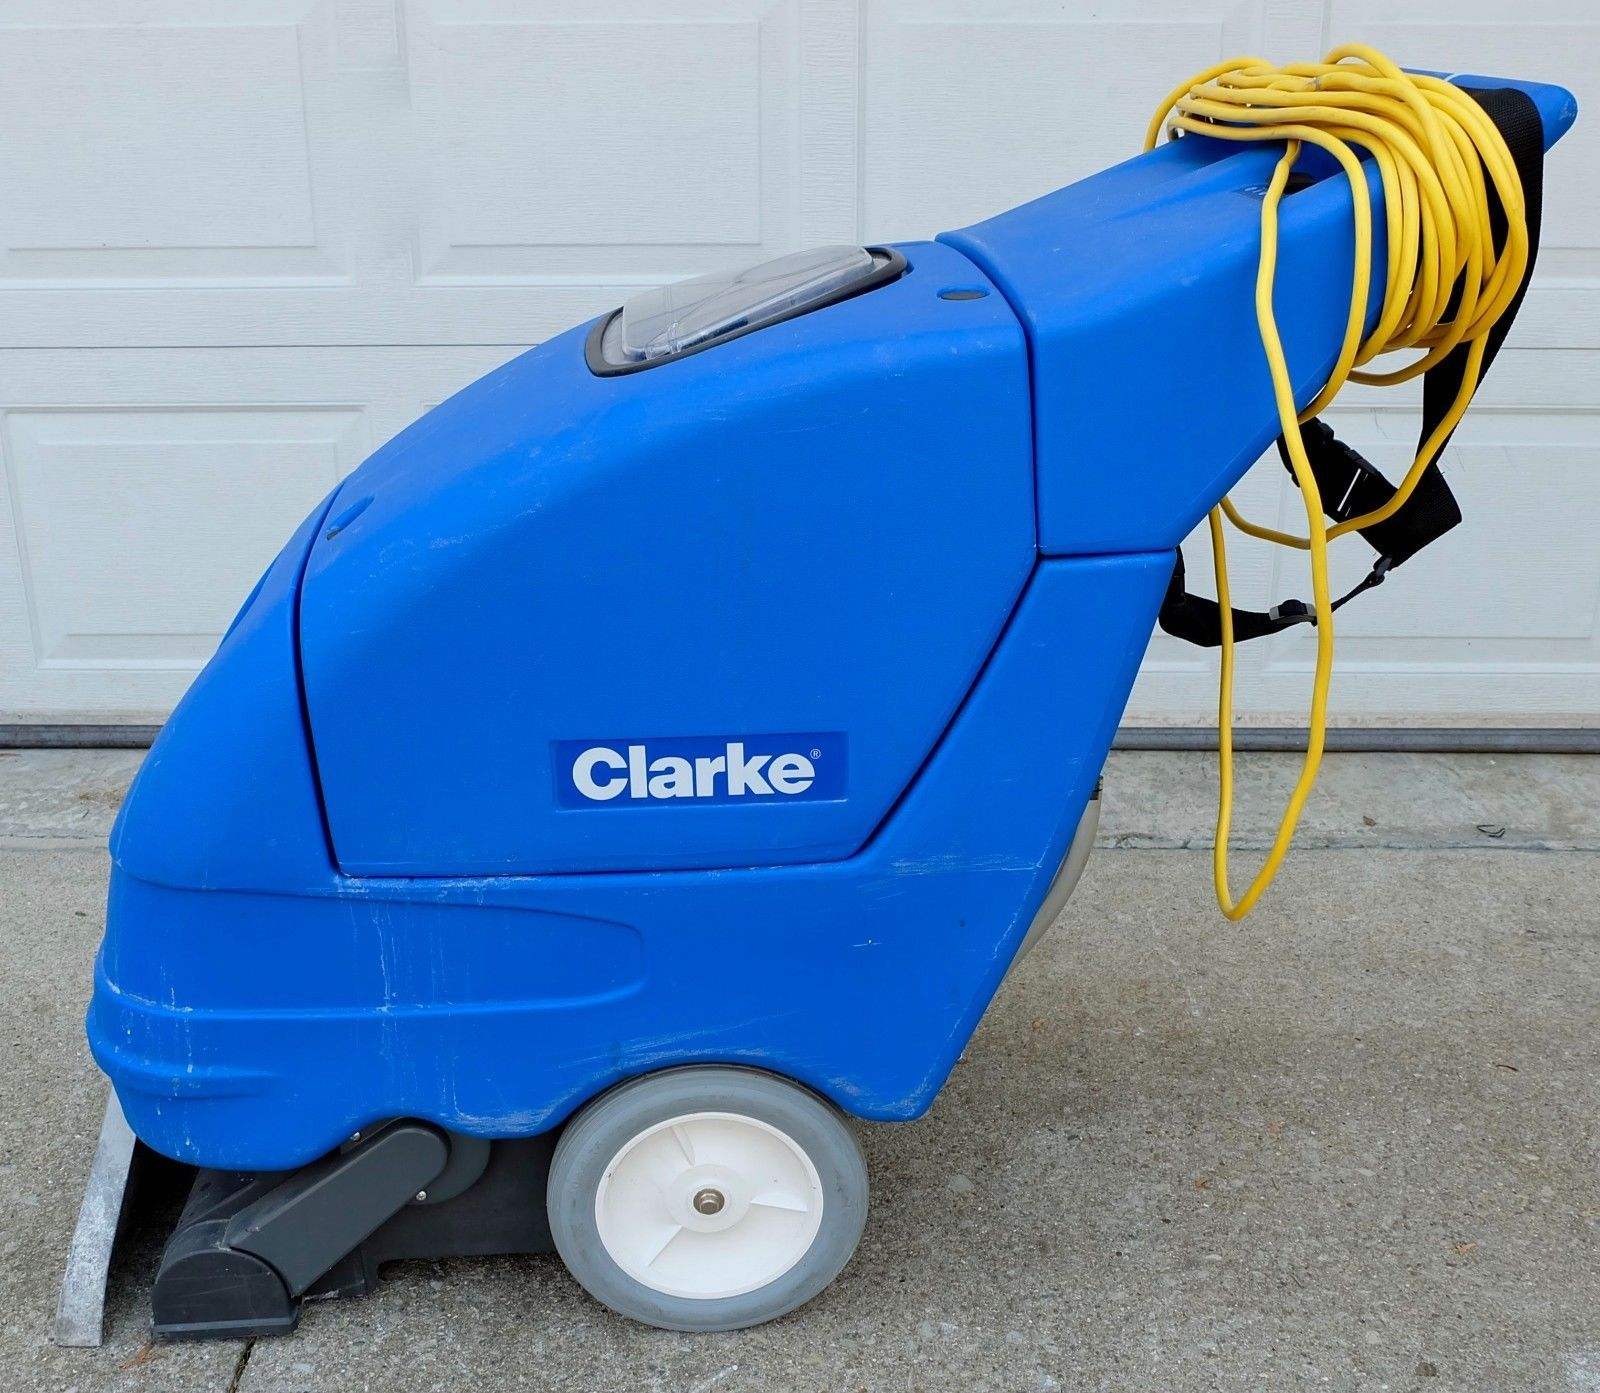 Clarke Clean Track 16 Wash Rinse Carpet Extractor 120v CordedElectric  Commercial (eBay Link)